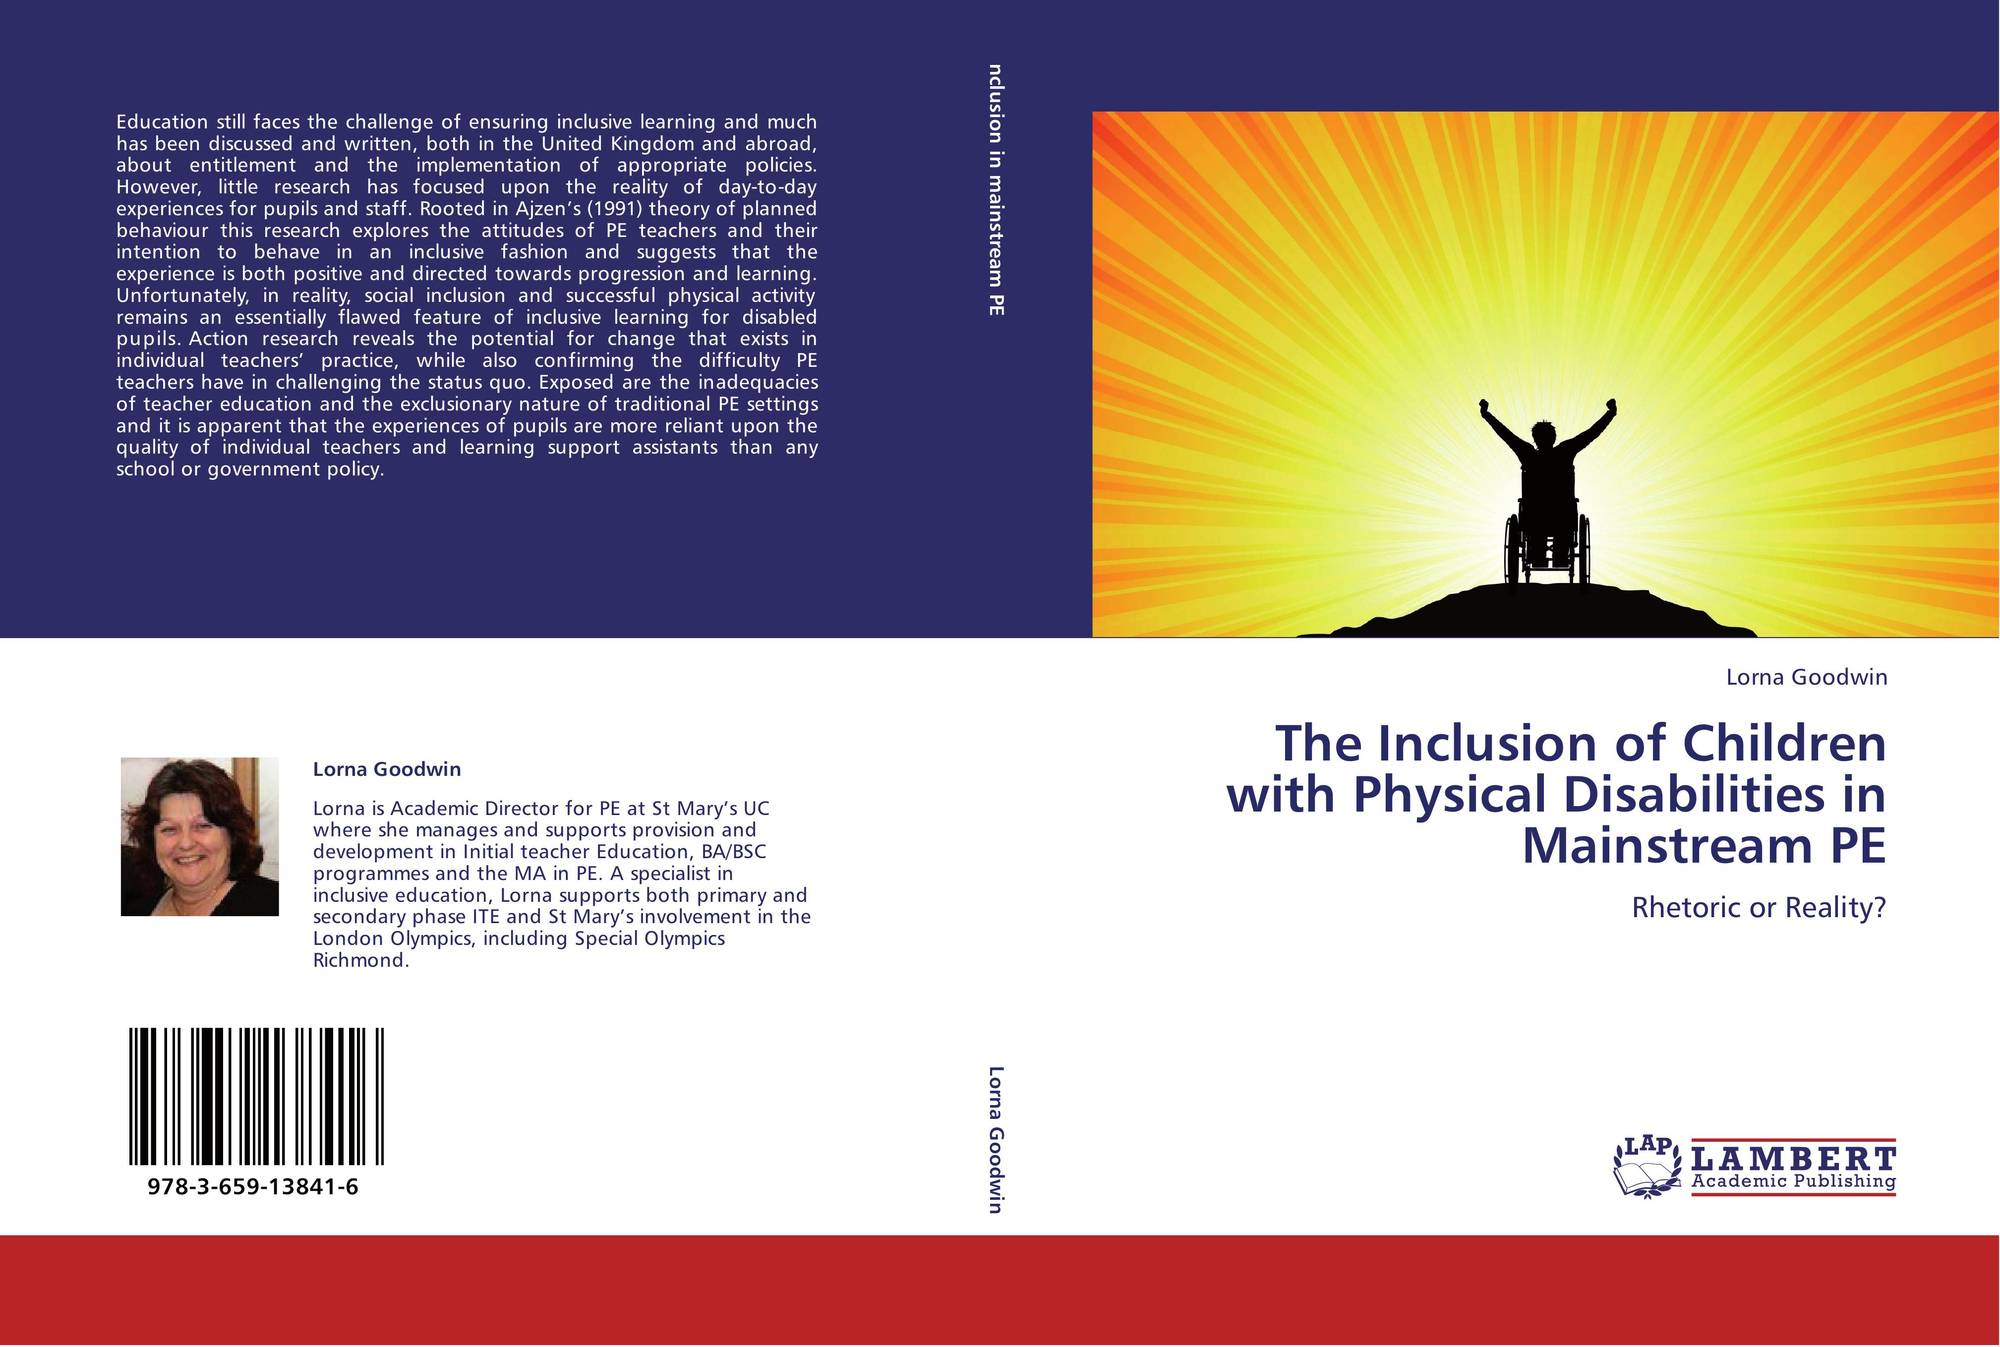 an analysis of the inclusion mainstreams physically mentally and multiply disabled children into reg Multiply disabled individuals (previously known as multiply handicapped and sometimes referred to as children with multiple exceptionalities) suffer from disabilities that include a sensory issue as well as a physical issue they often need support beyond the confines of the classroom.